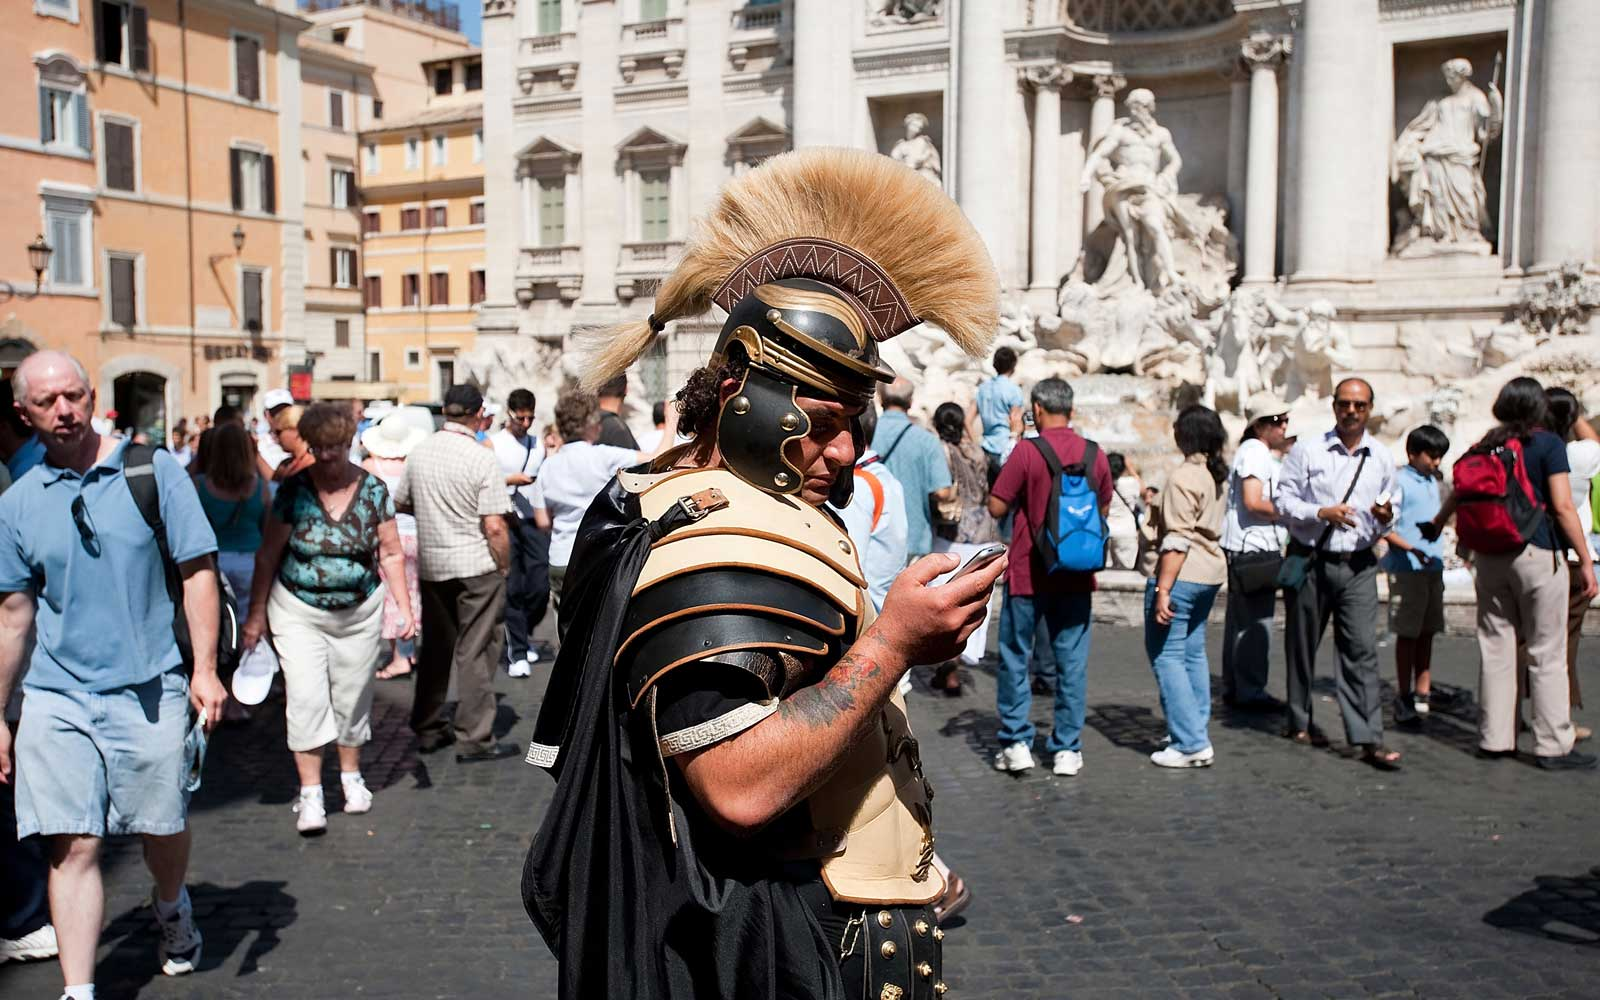 A man dressed up like an ancient Roman, in front of the Trevi fountain, is checking his mobile phone, w